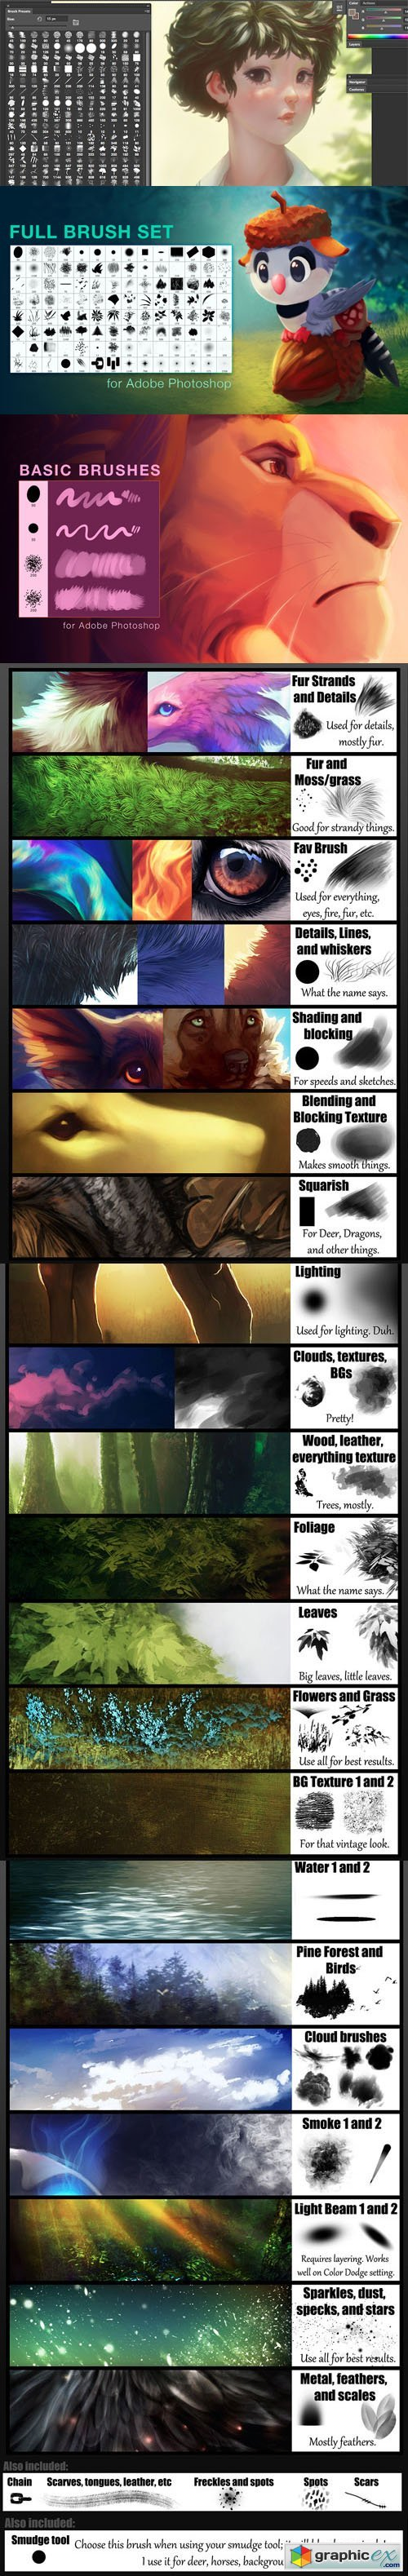 My Brushes Pack - Huge Painting Brushes for Photoshop